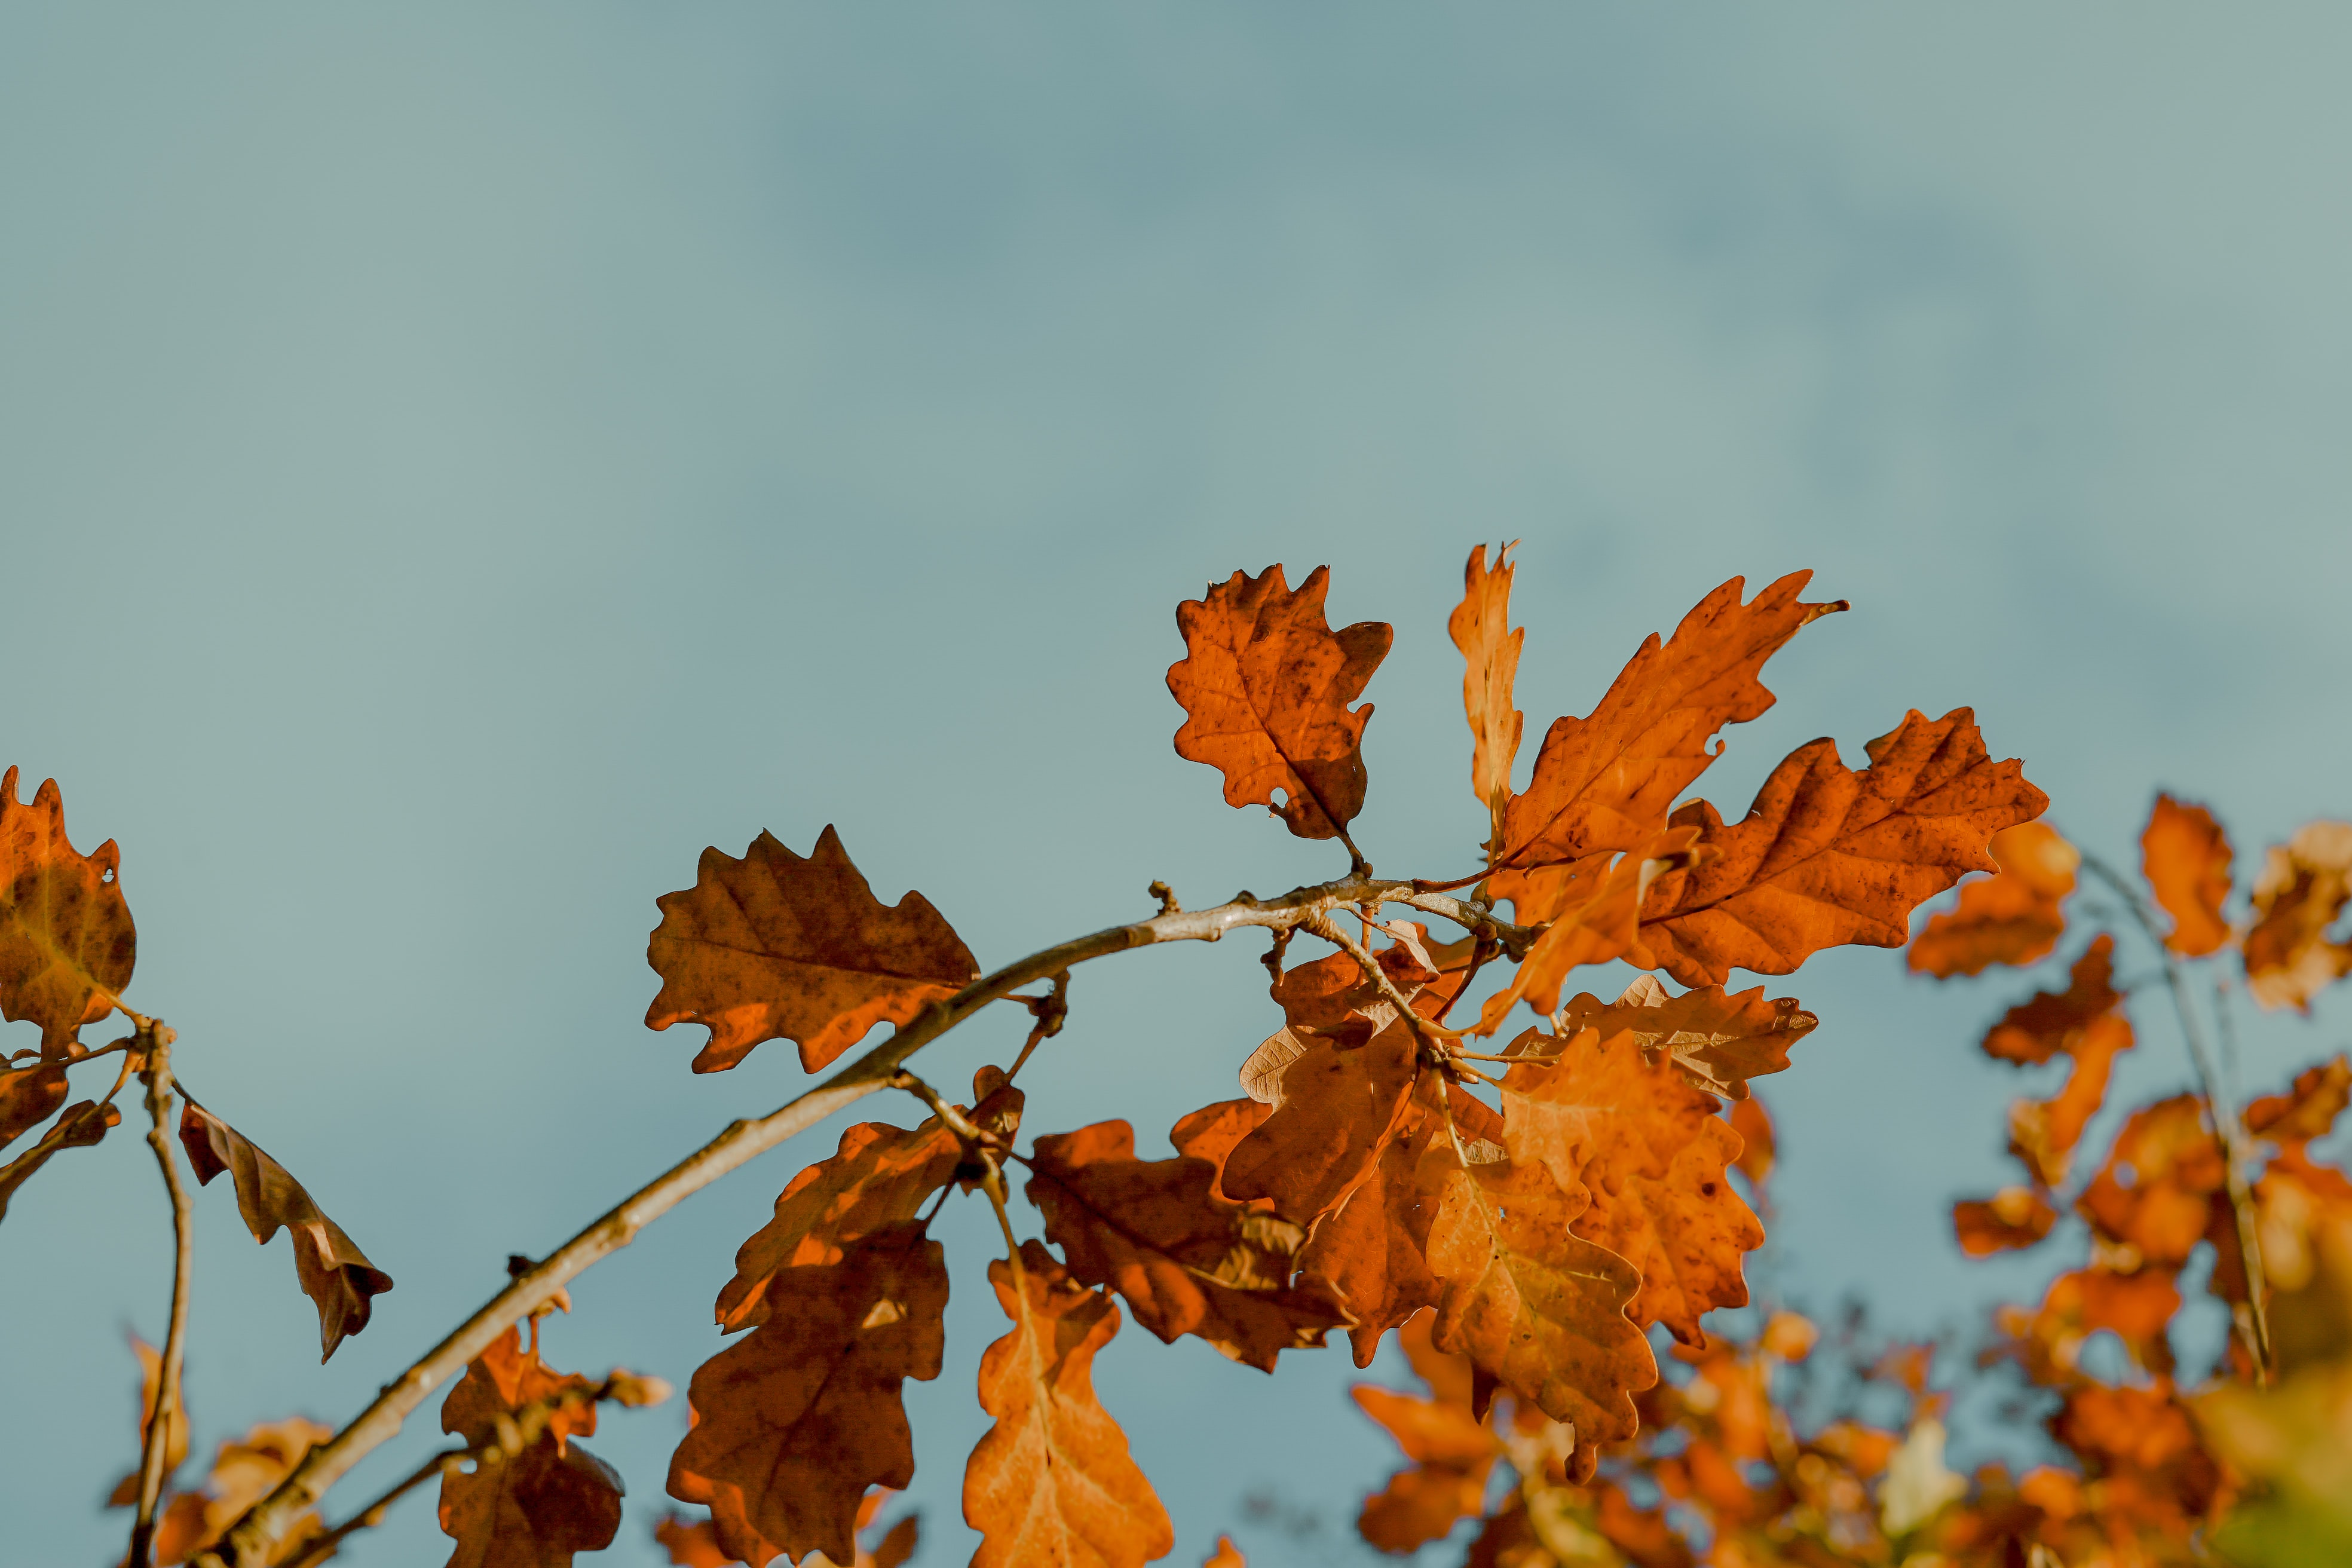 dried leaves under white clouds at daytime